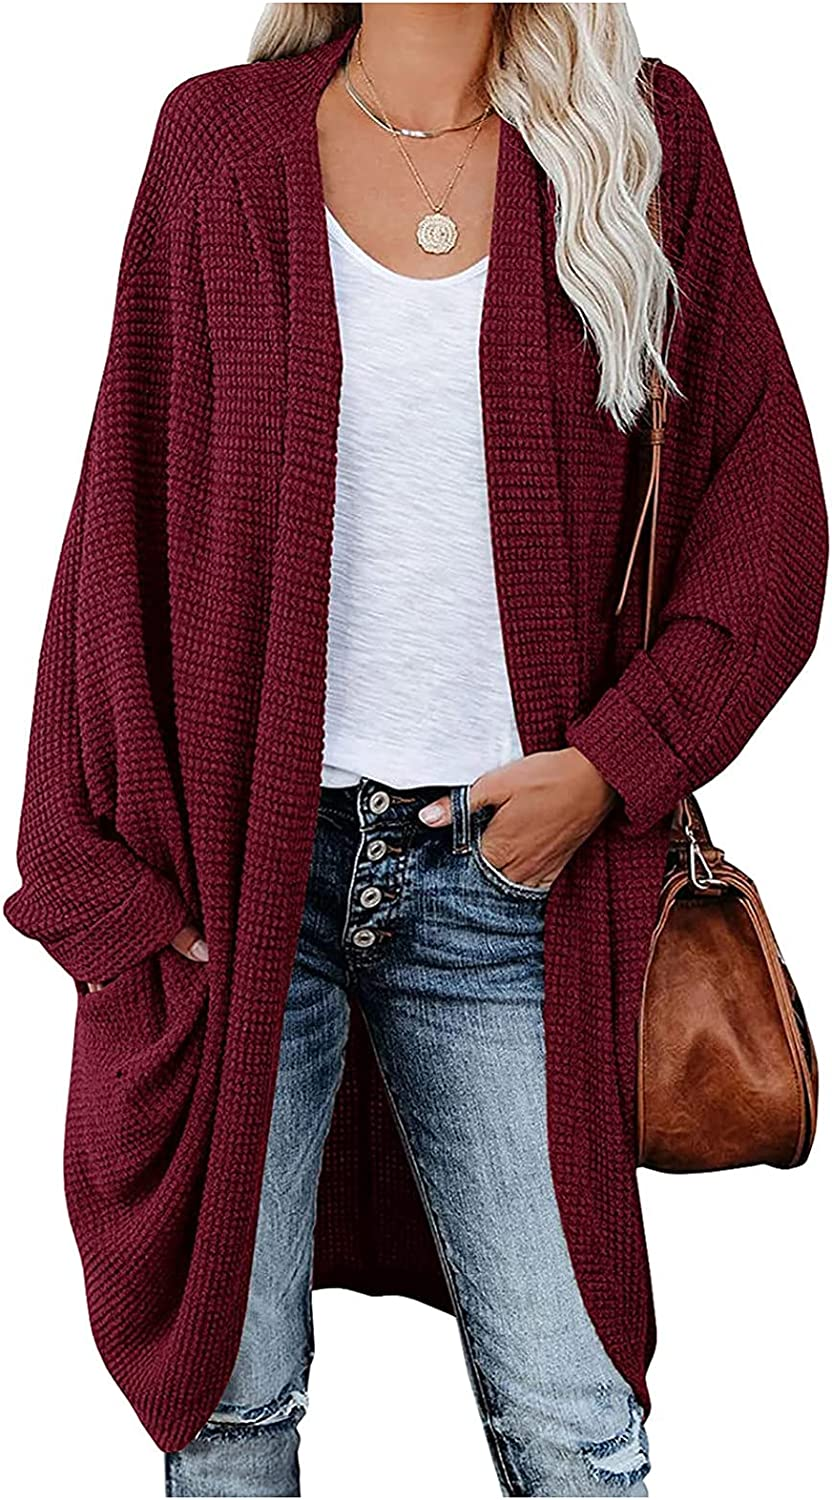 Goldweather Women Open Front Chunky Cable Knit Cardigan Casual Lightweight Oversized Long Cardigans Sweater Coat Shrugs Tops